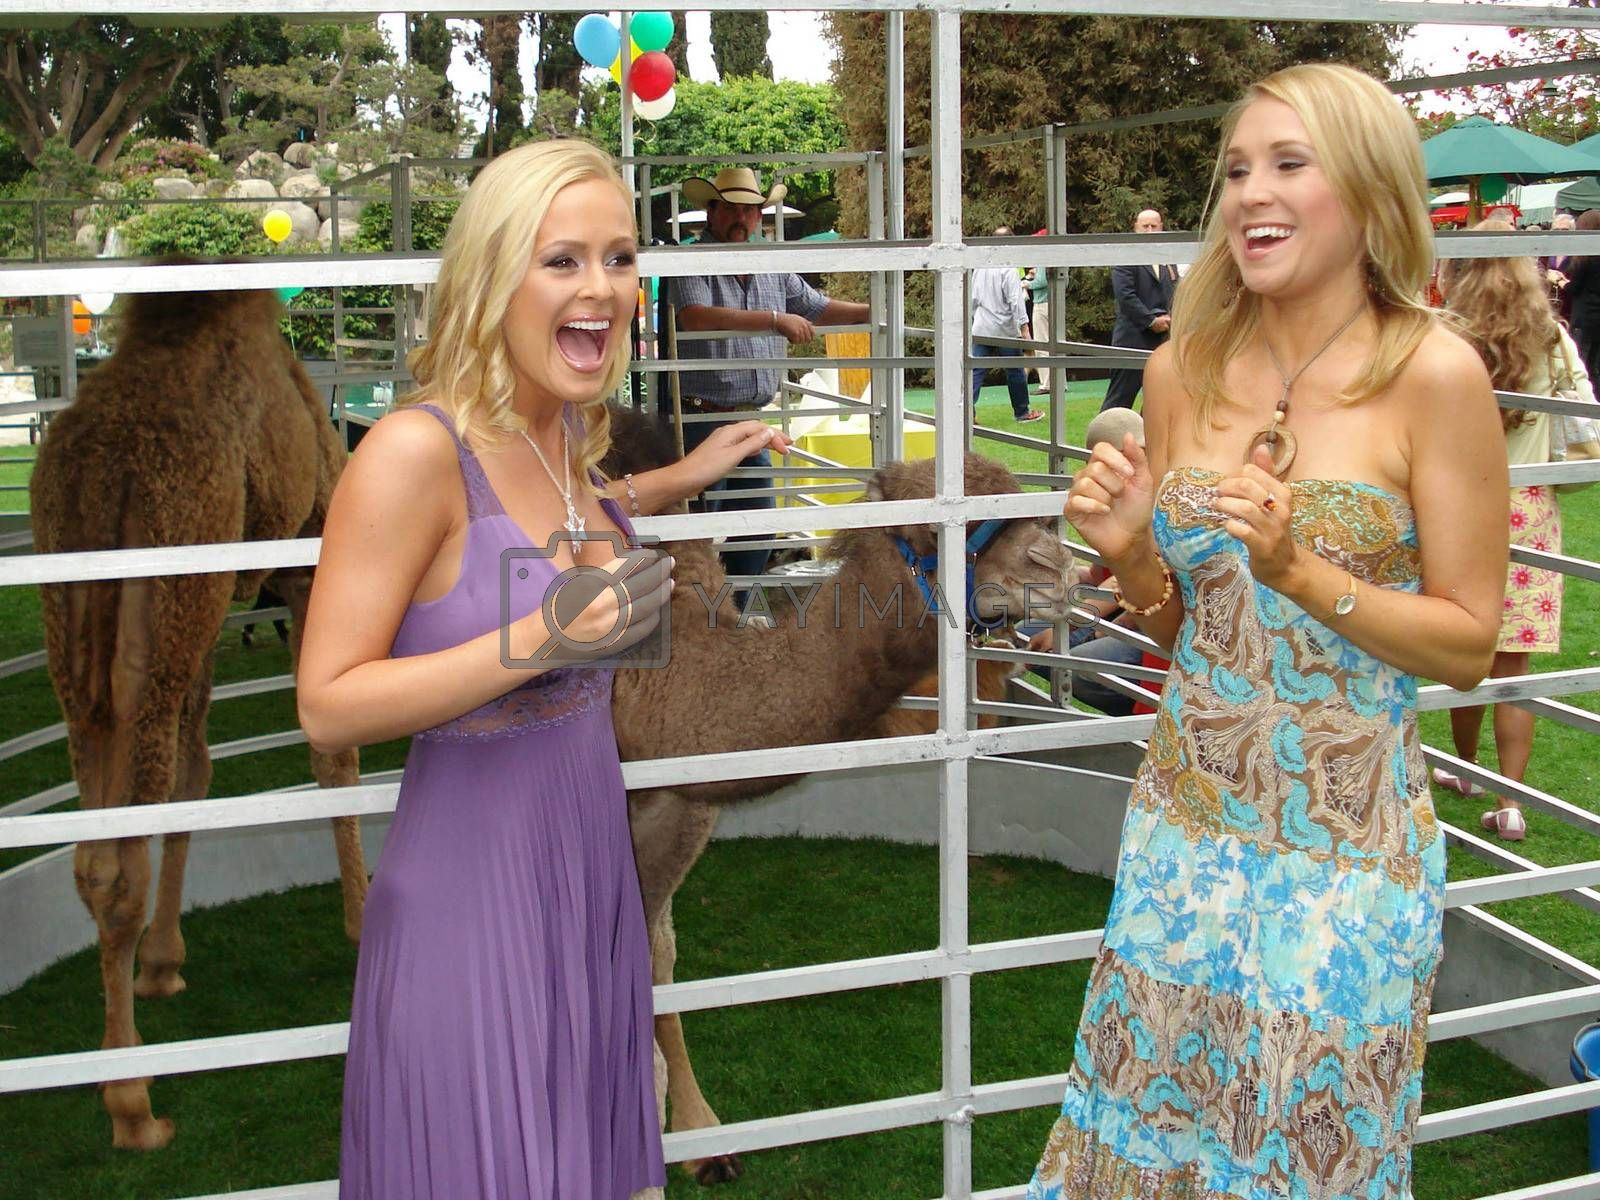 Katie Lohmann and Alana Curry at the Playboy Mansion Easter Egg Hunt. Playboy Mansion, Los Angeles, CA. 04-07-07